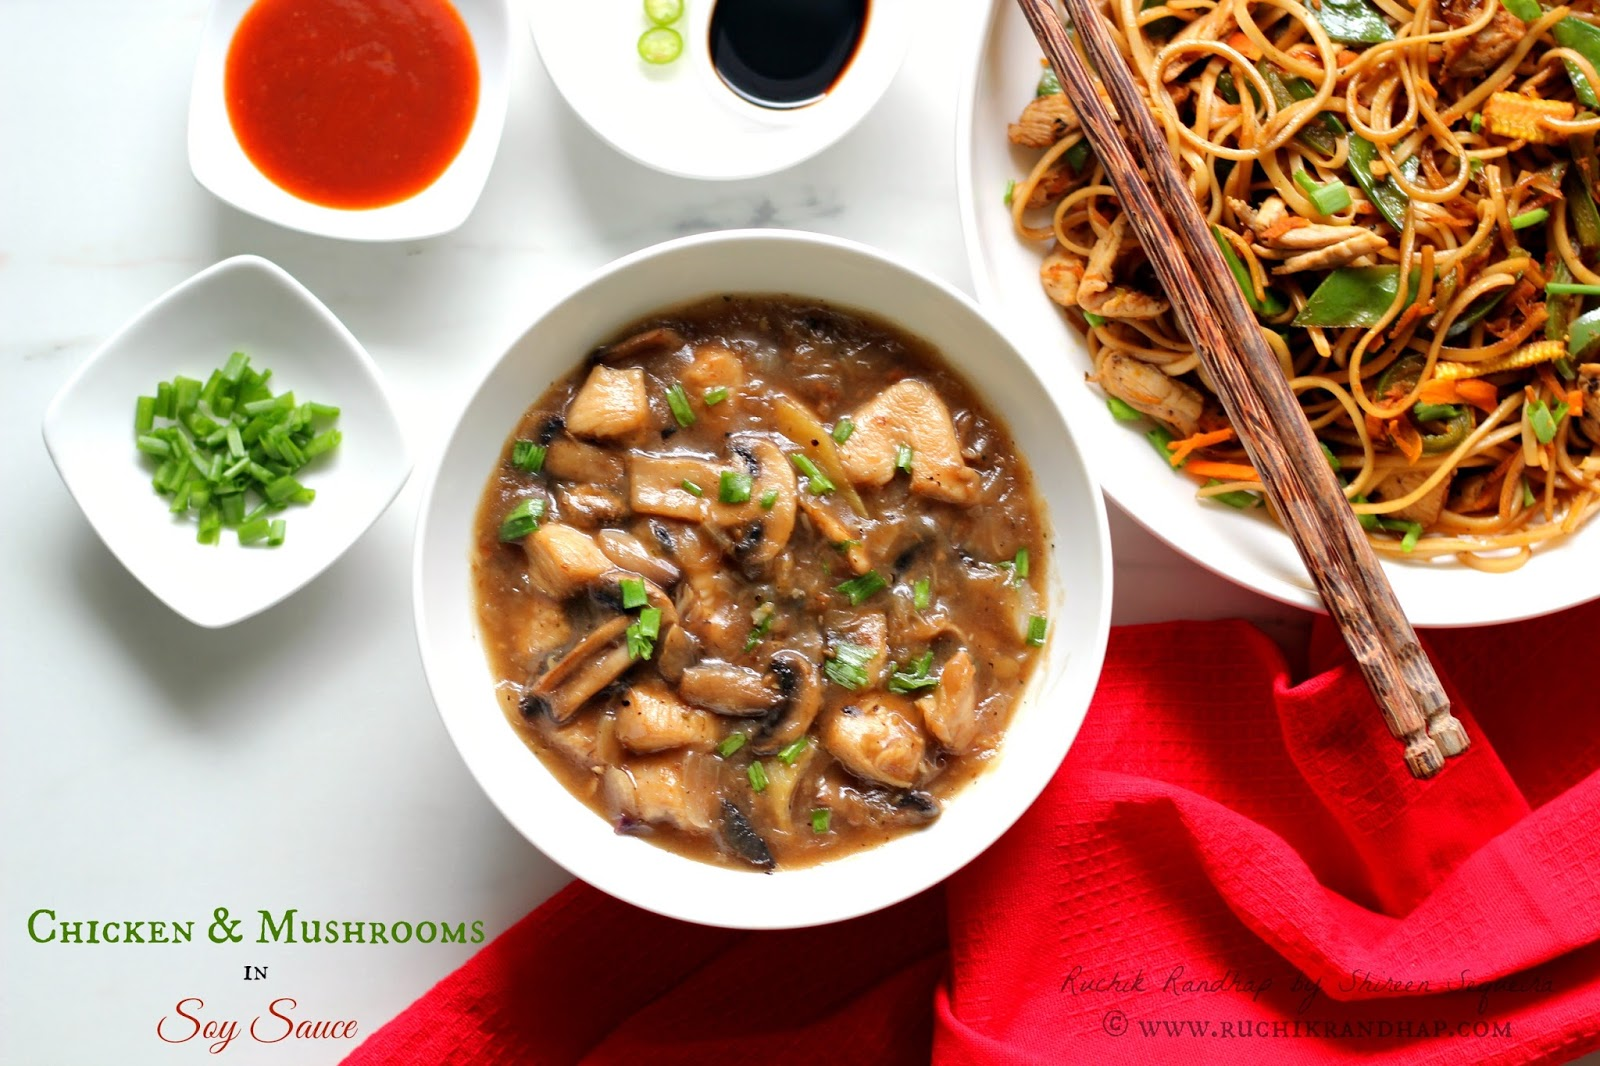 Chicken mushrooms in soy sauce ruchik randhap my dream of making chinese food that didnt flop came true over the weekend as i said in my previous post my son loves to bookmark recipes and our forumfinder Image collections